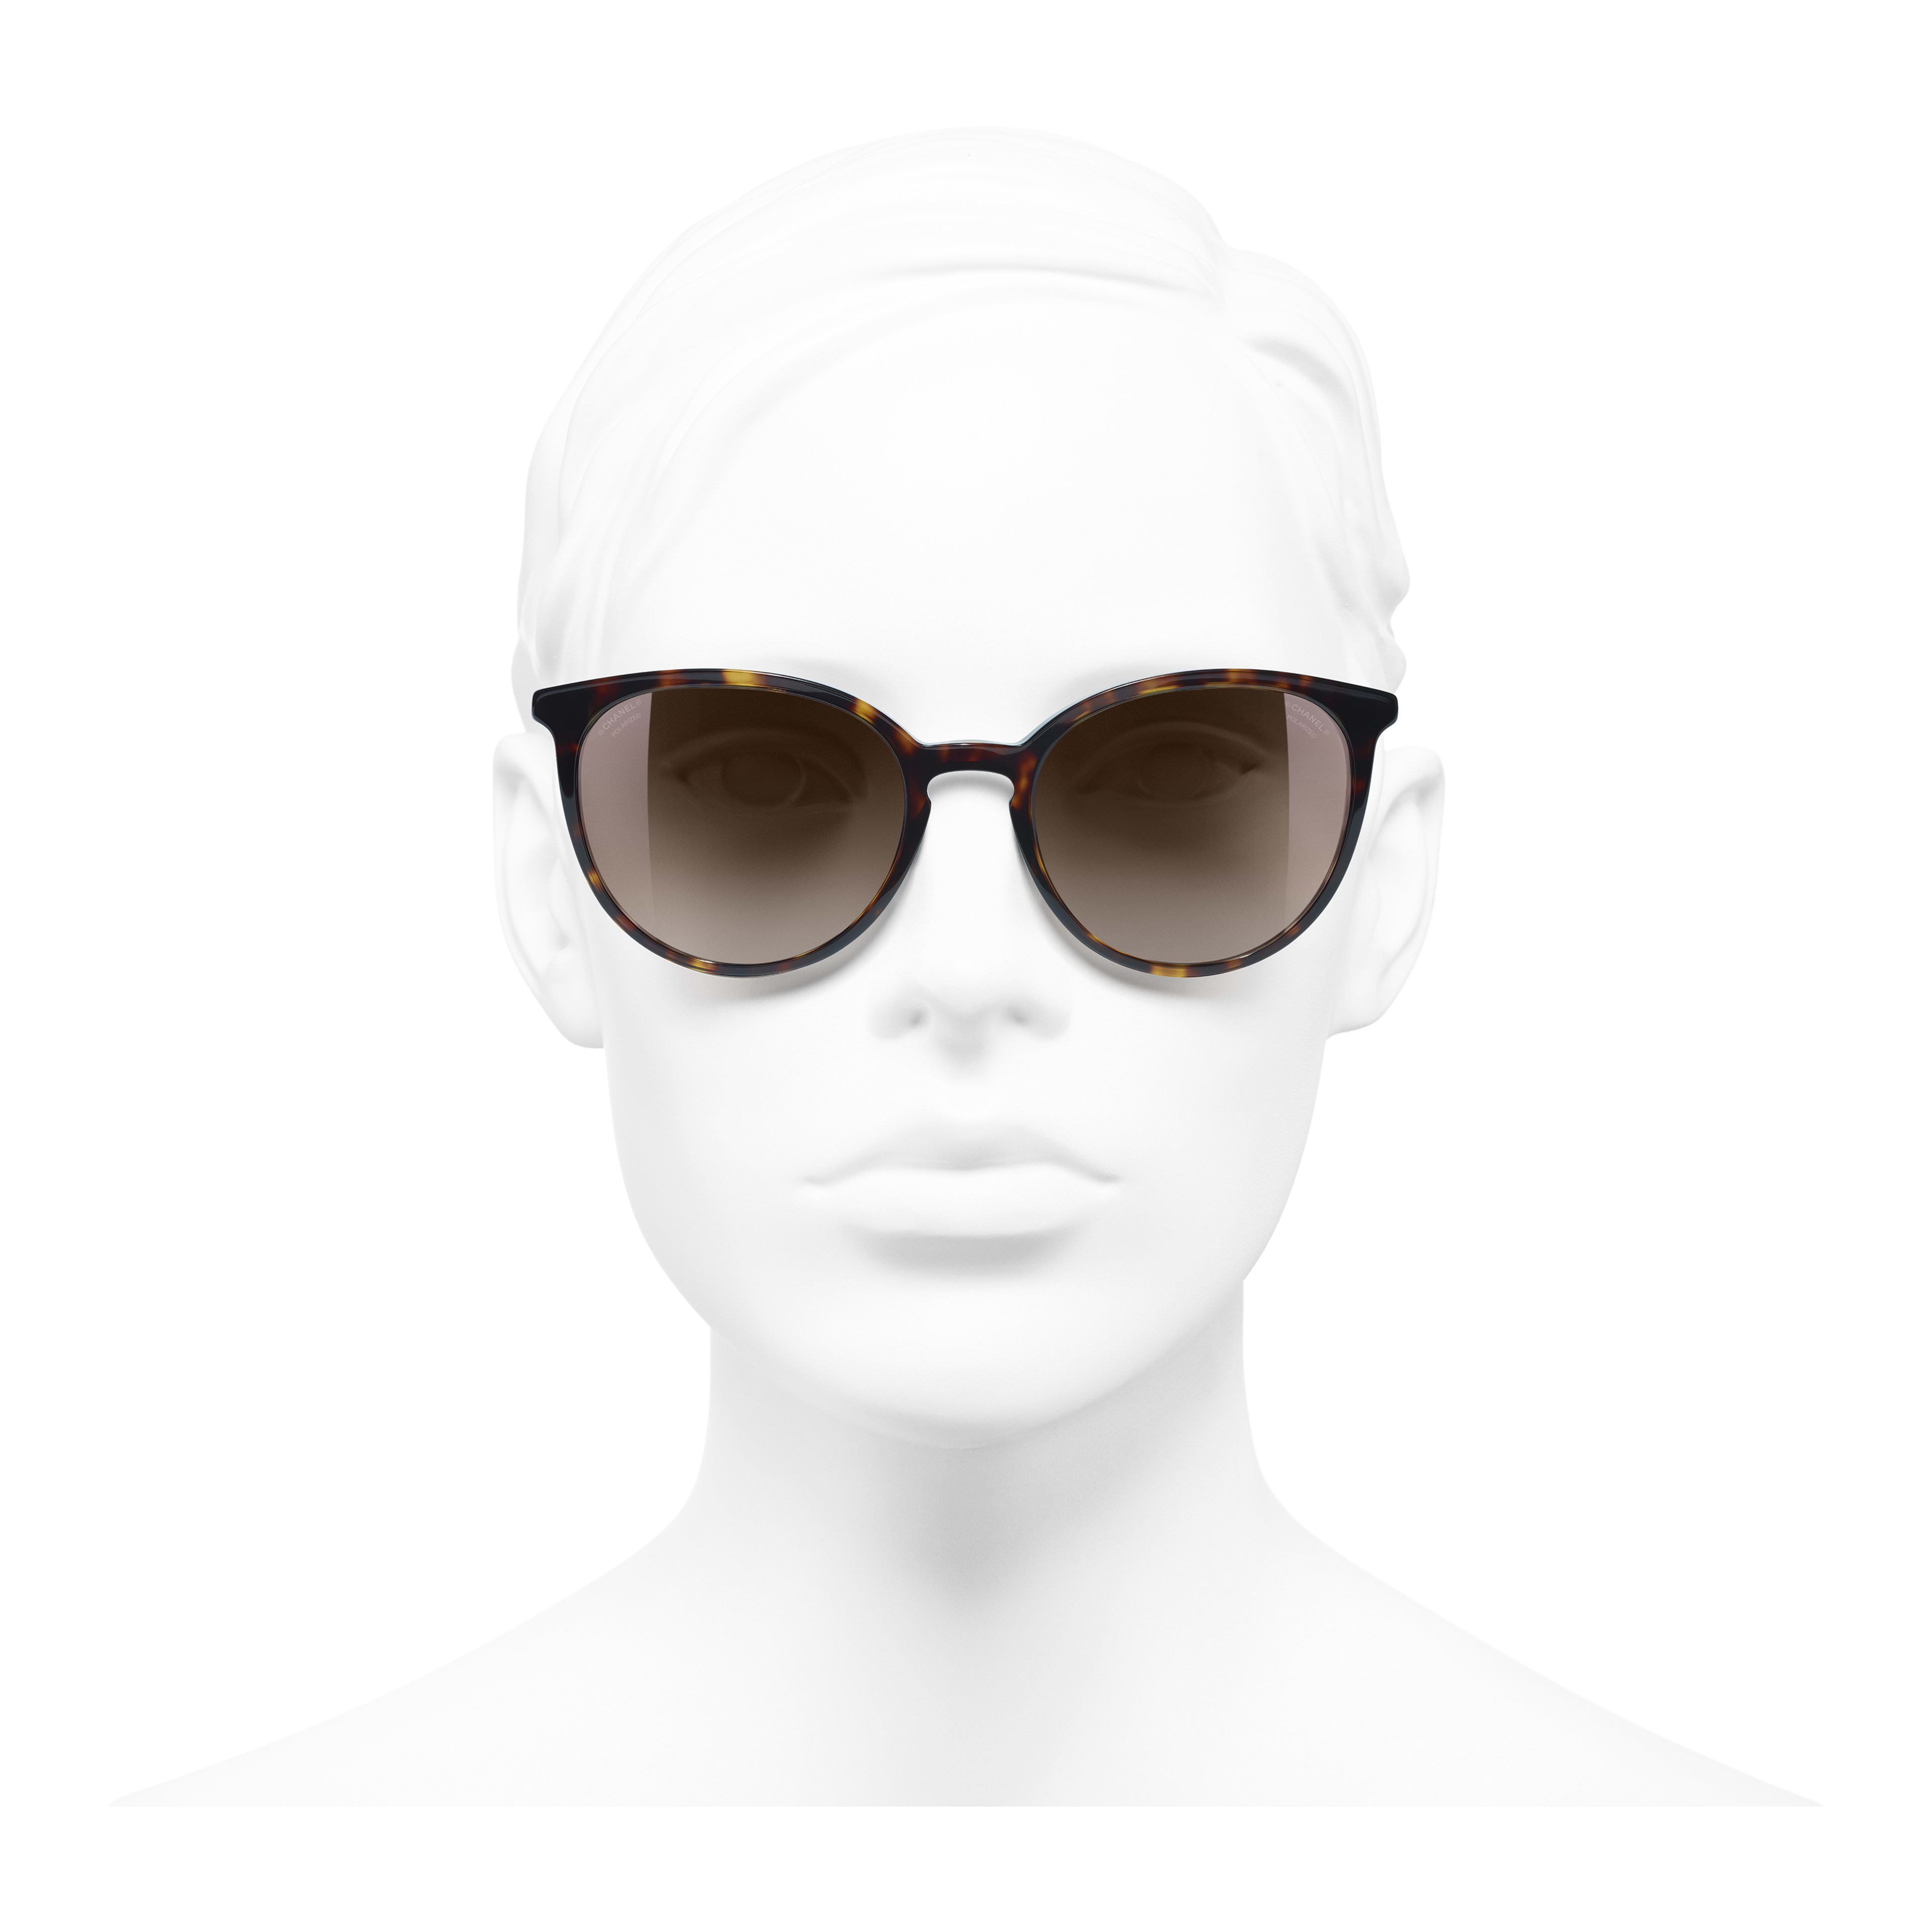 Butterfly Sunglasses Acetate & Imitation Pearls - Polarized Lenses Dark Tortoise -                                                                     view 2 - see full sized version